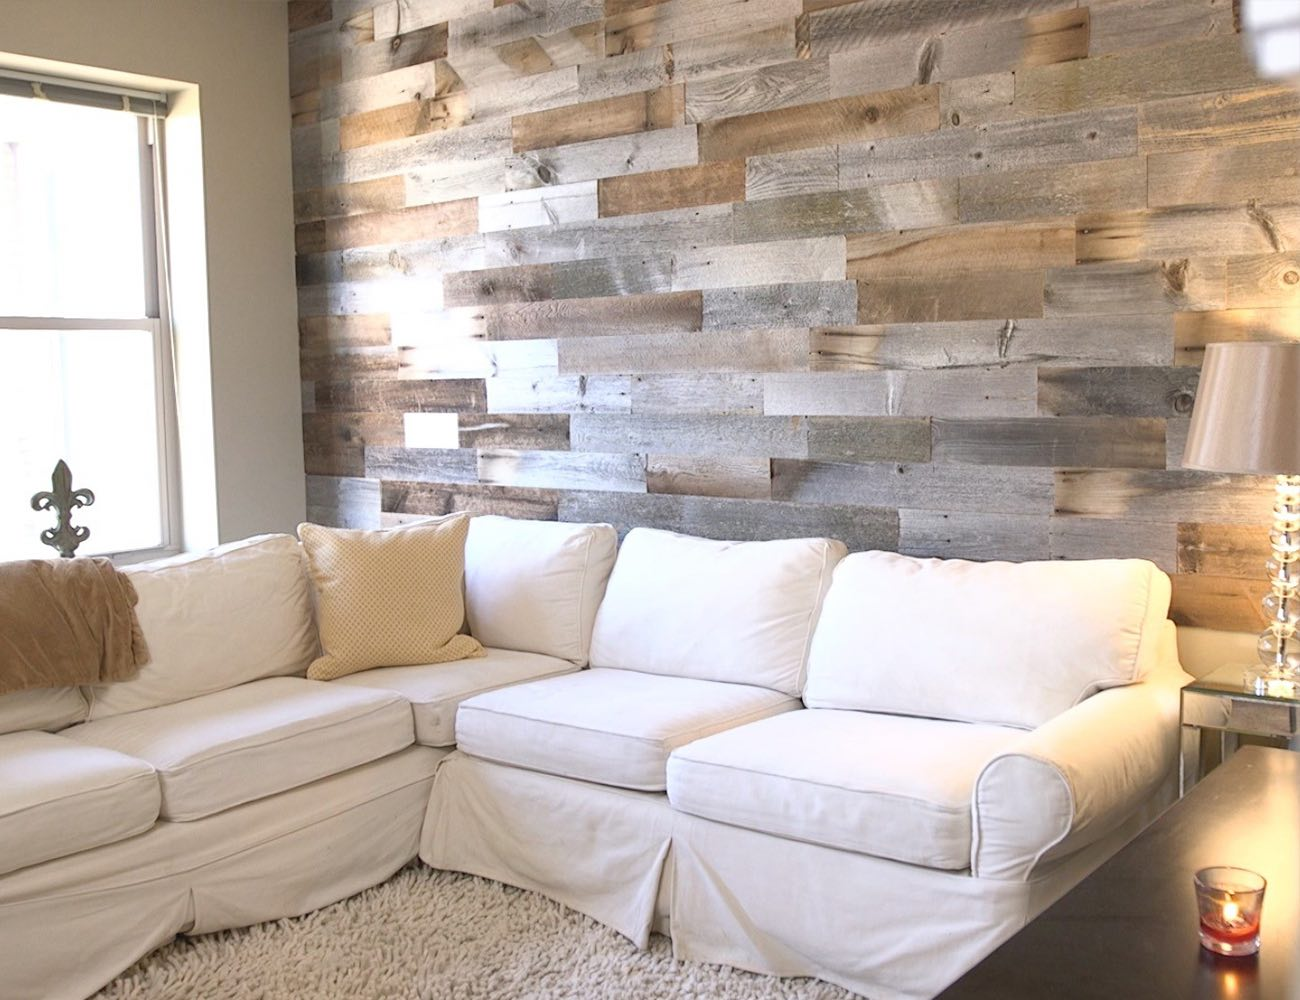 Artis Wall Removable And Reusable Wall Planks 187 Gadget Flow